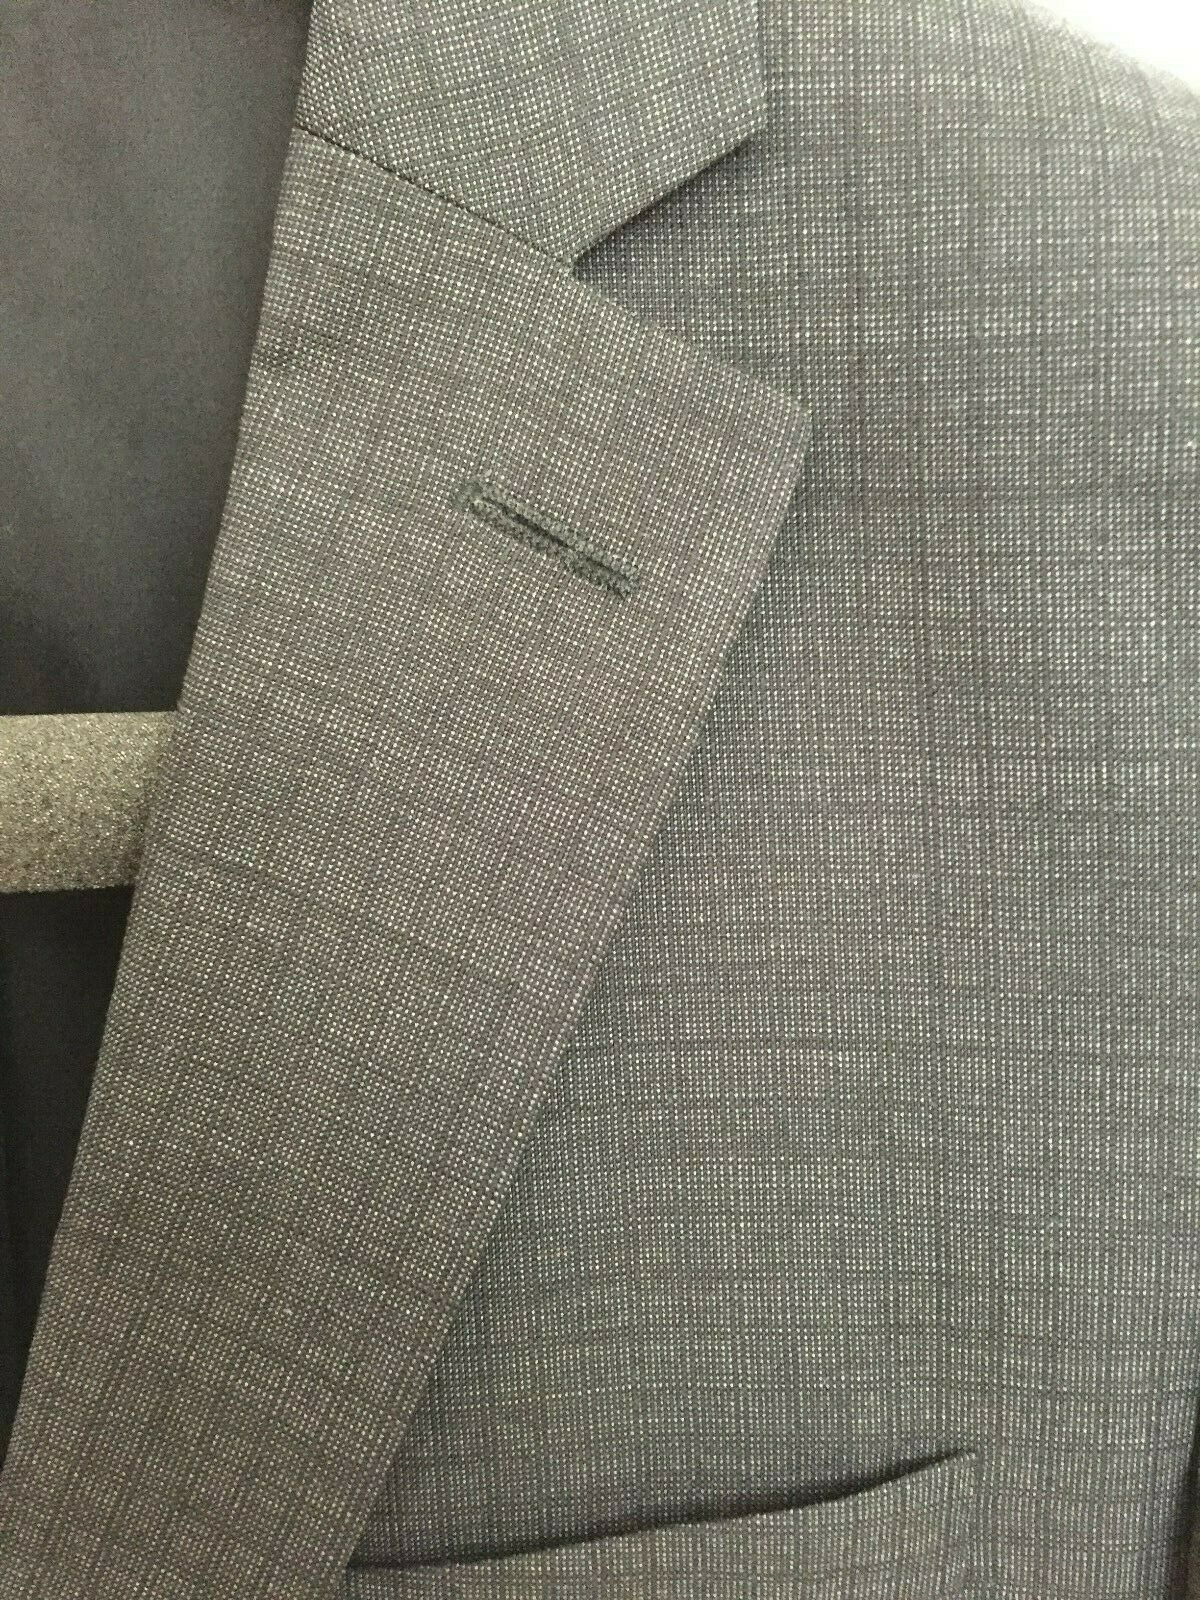 Hugo Boss Suit Jacket - image 2